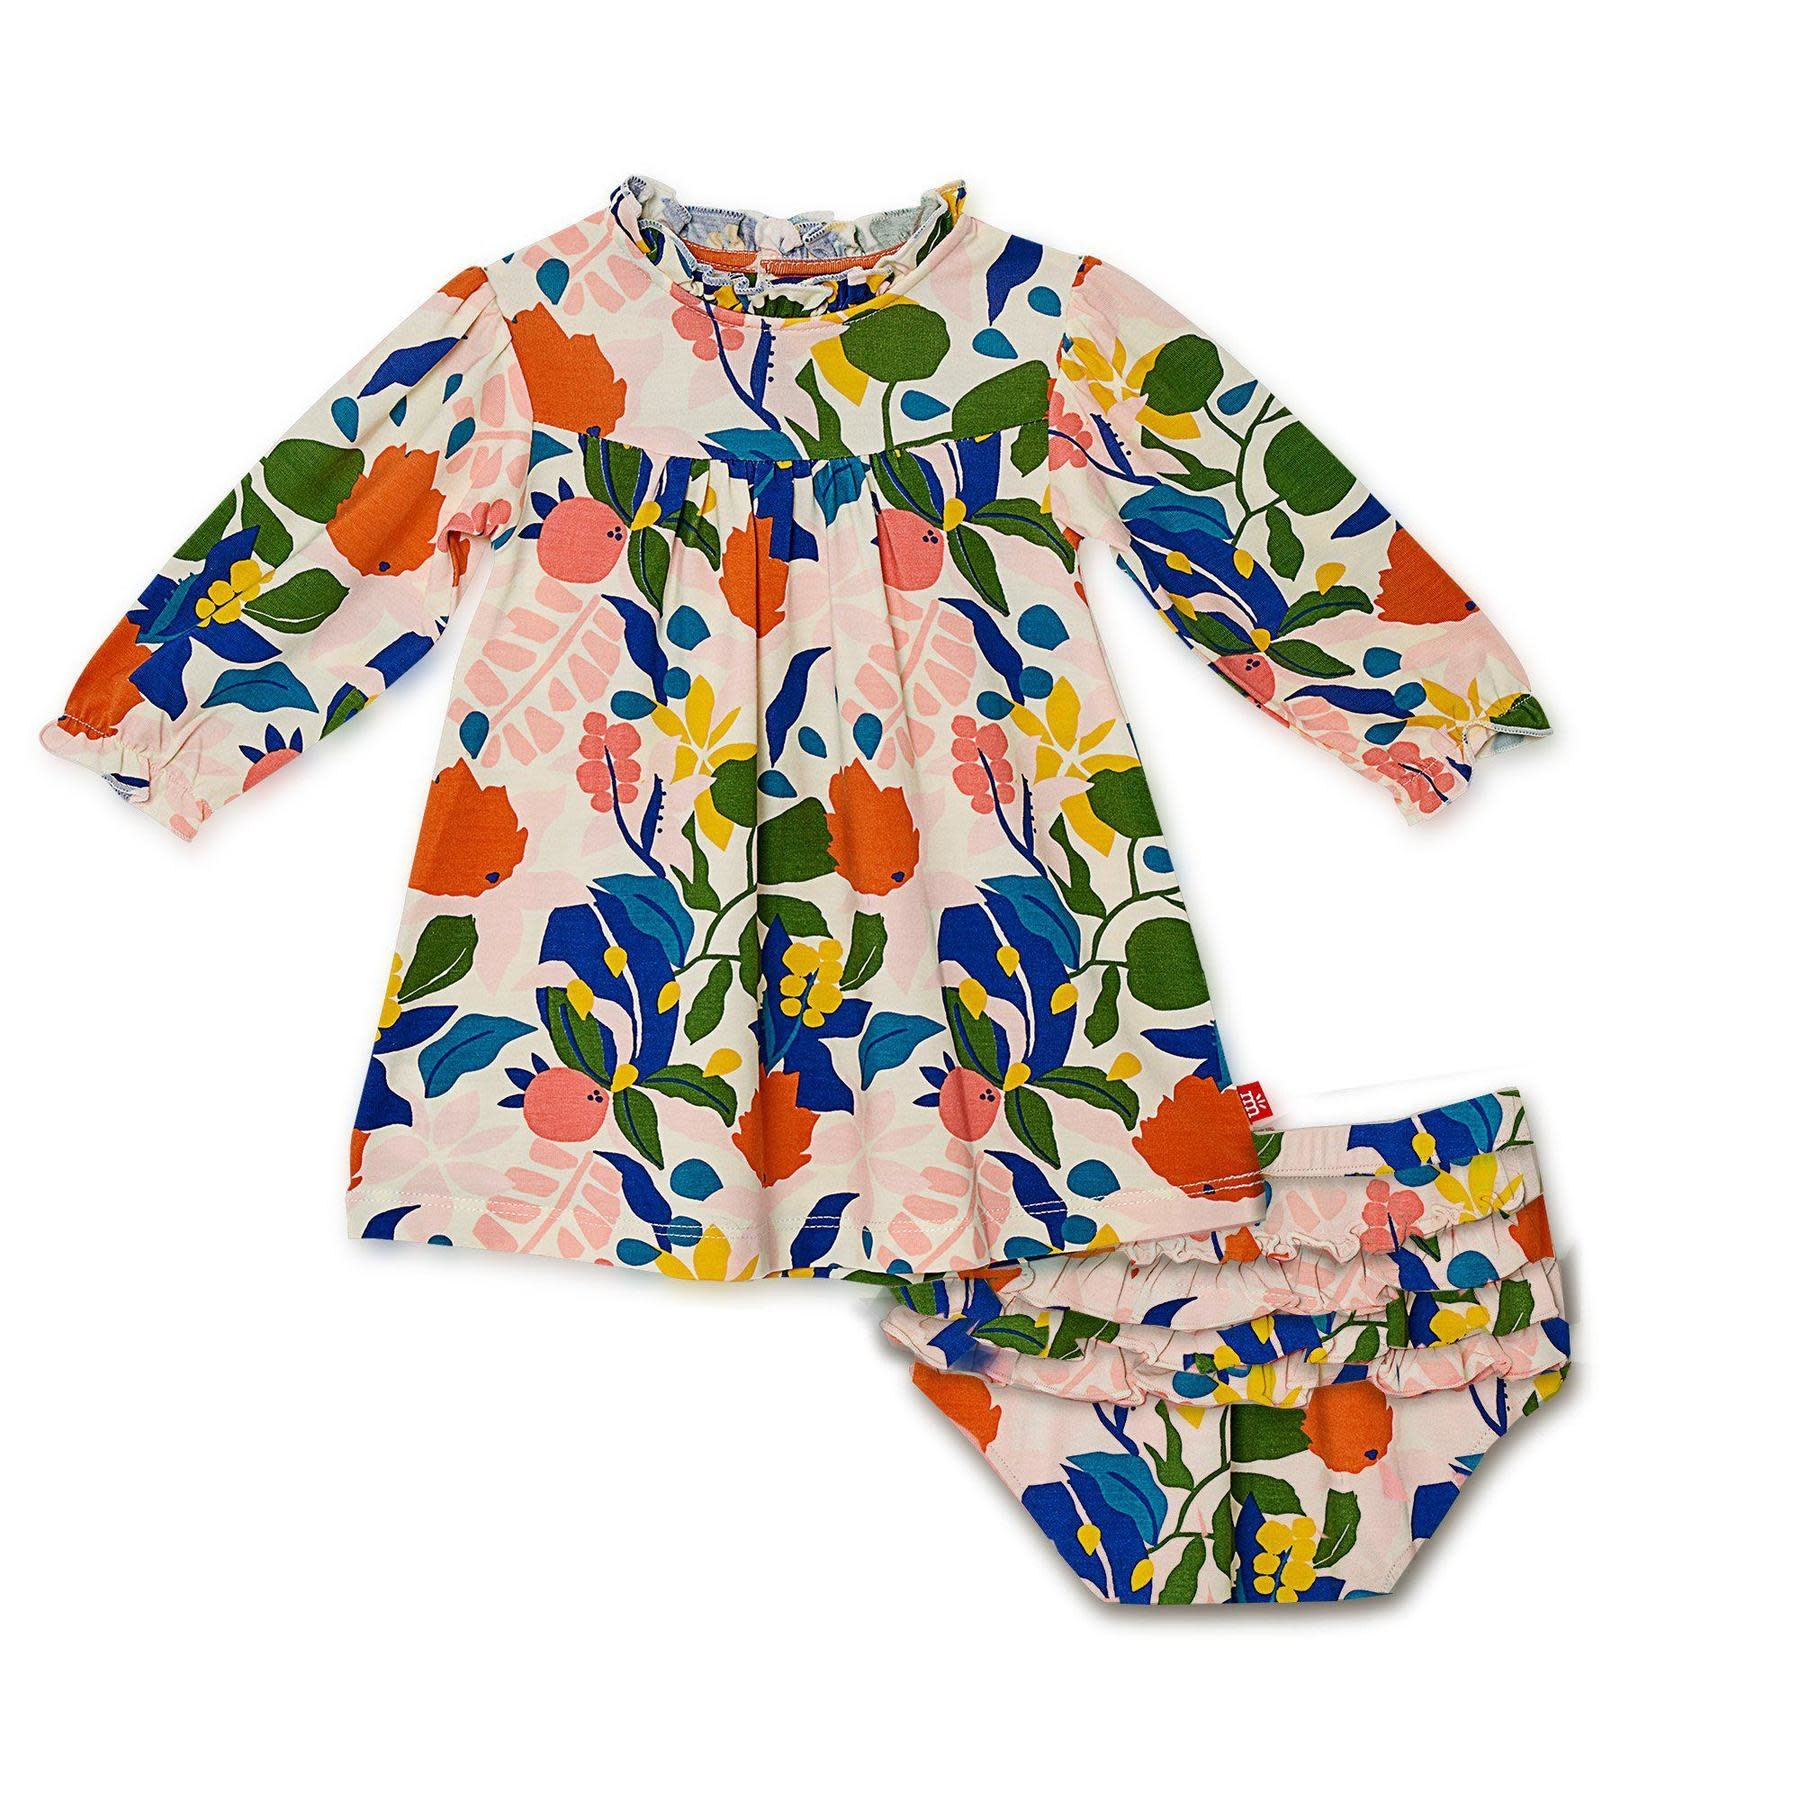 Magnificent Baby Rayleigh Modal Dress Set